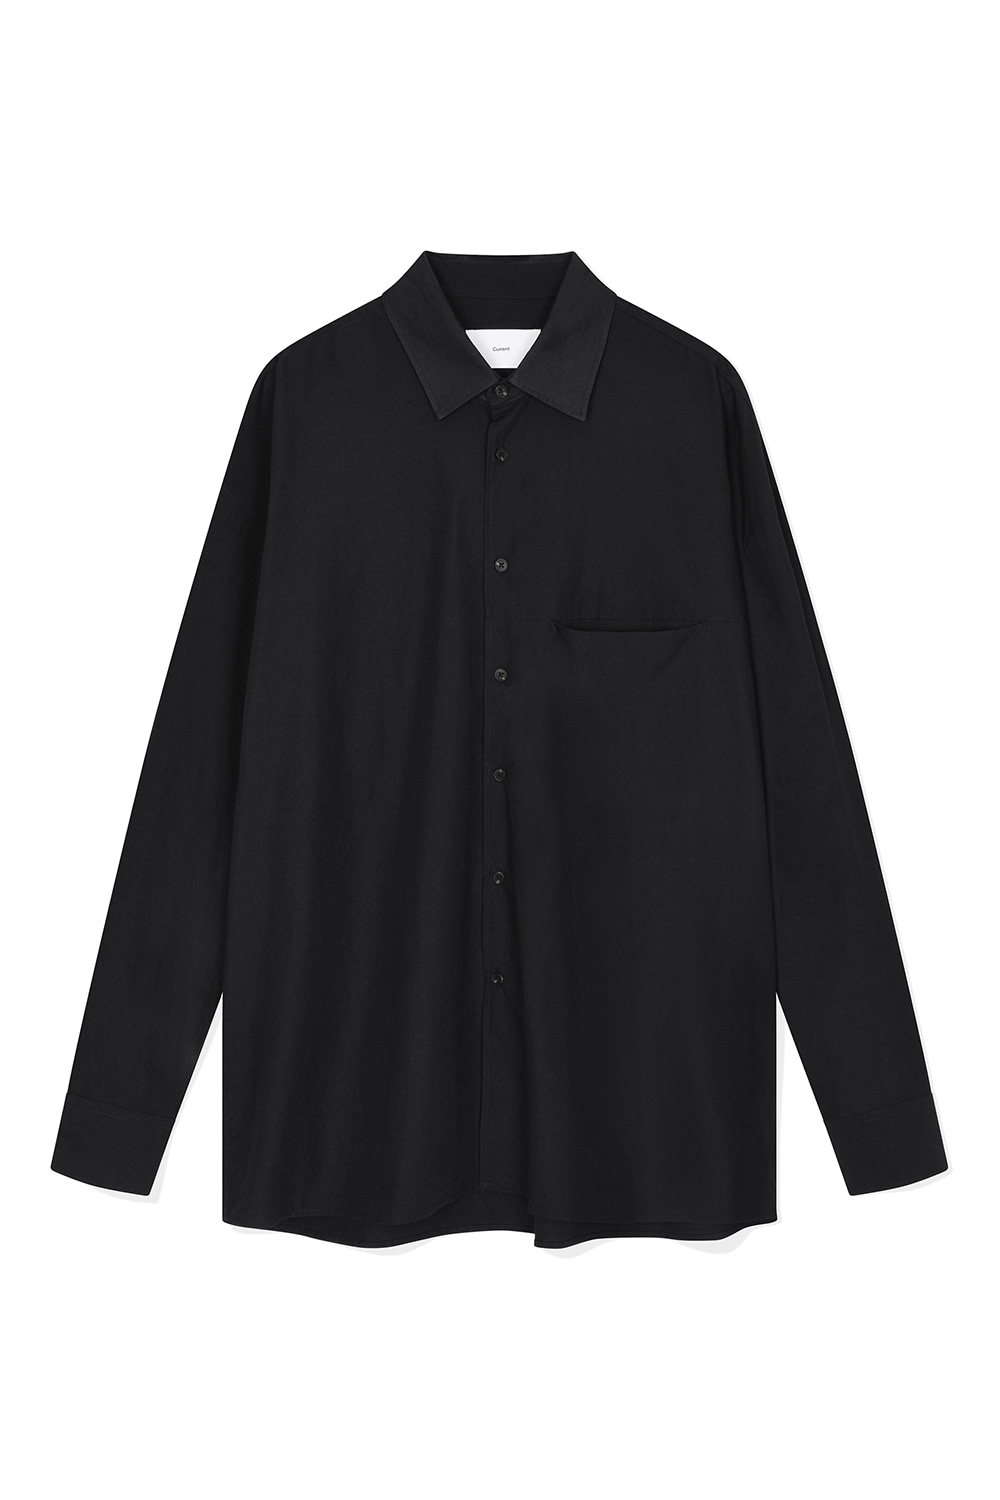 Overfit Shirts Men JA [Black] -10%